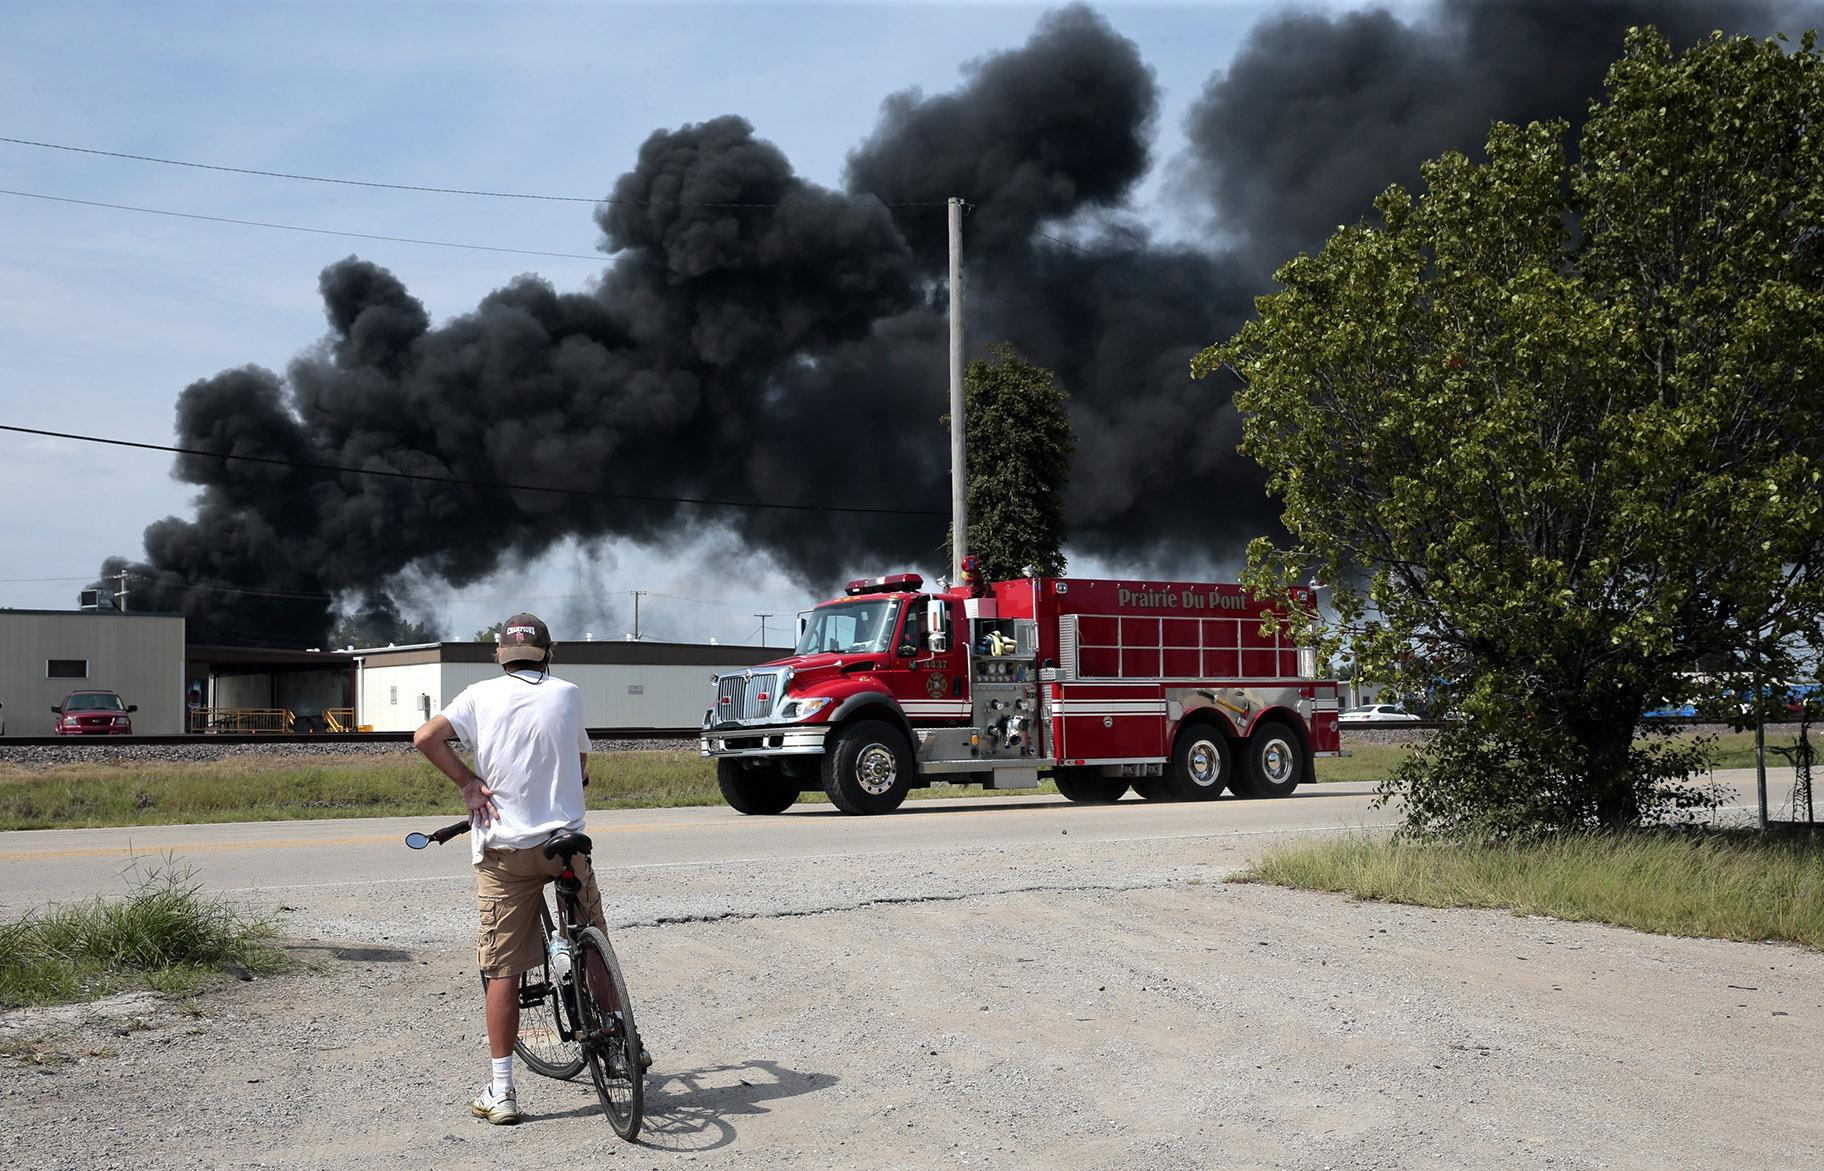 A resident watches as a fire truck arrives in downtown Dupo, Illinois, to help fight a tanker fire from a derailed train on Tuesday, Sept. 10. 2019. Black smoke coming from the derailment scene can be seen for miles and caused the evacuation of schools in the town, authorities said. (Robert Cohen / St. Louis Post-Dispatch via AP)